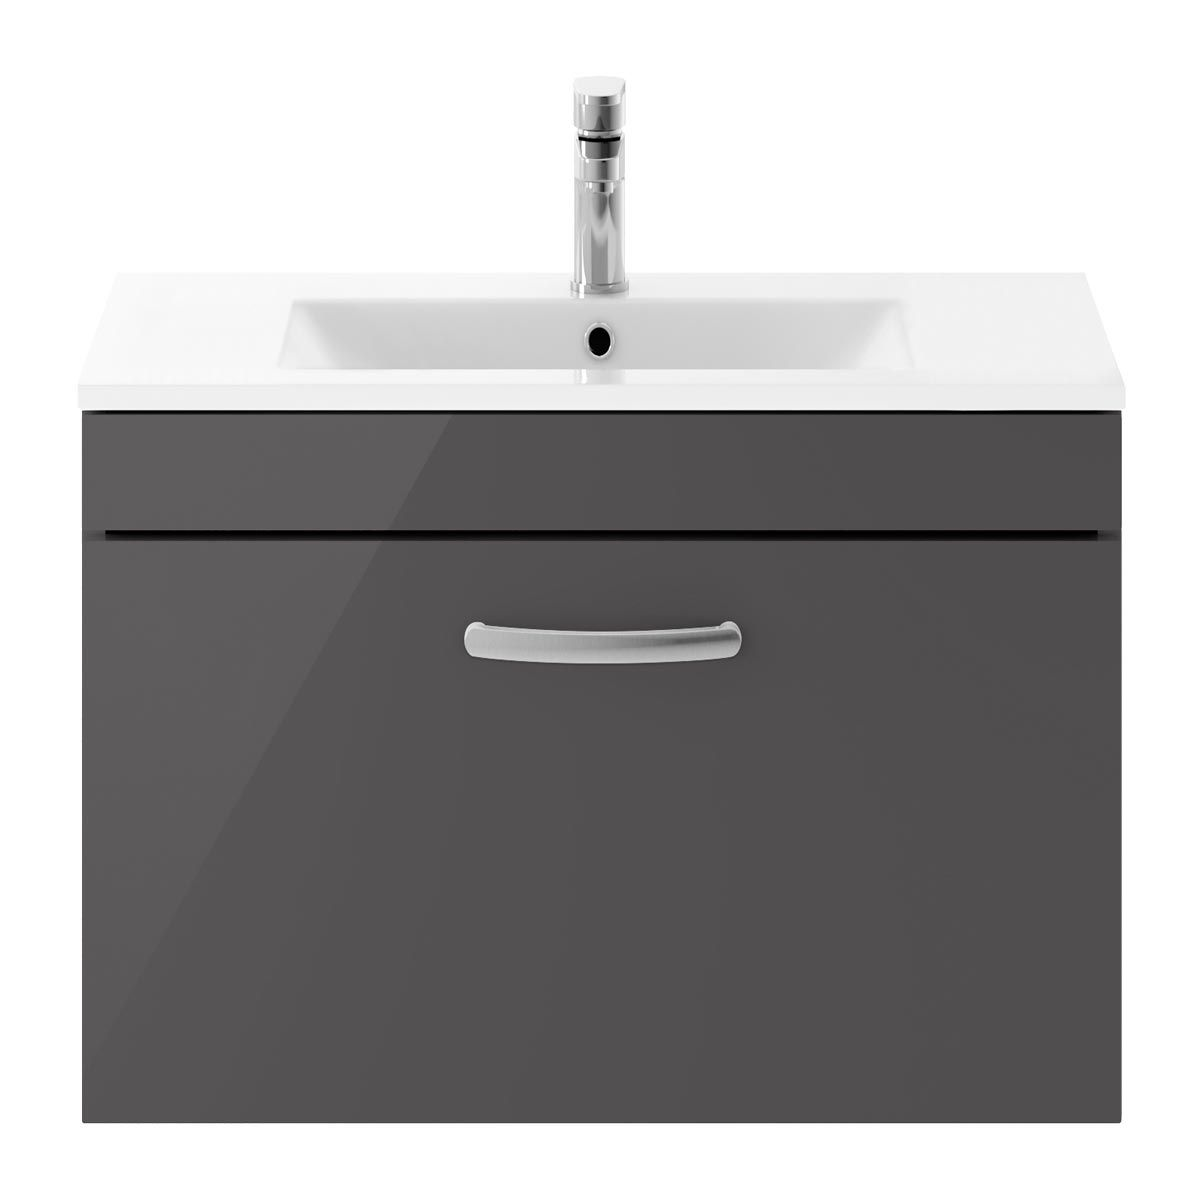 Nuie Athena Gloss Grey 1 Drawer Wall Hung Vanity Unit with 18mm Profile Basin 800mm